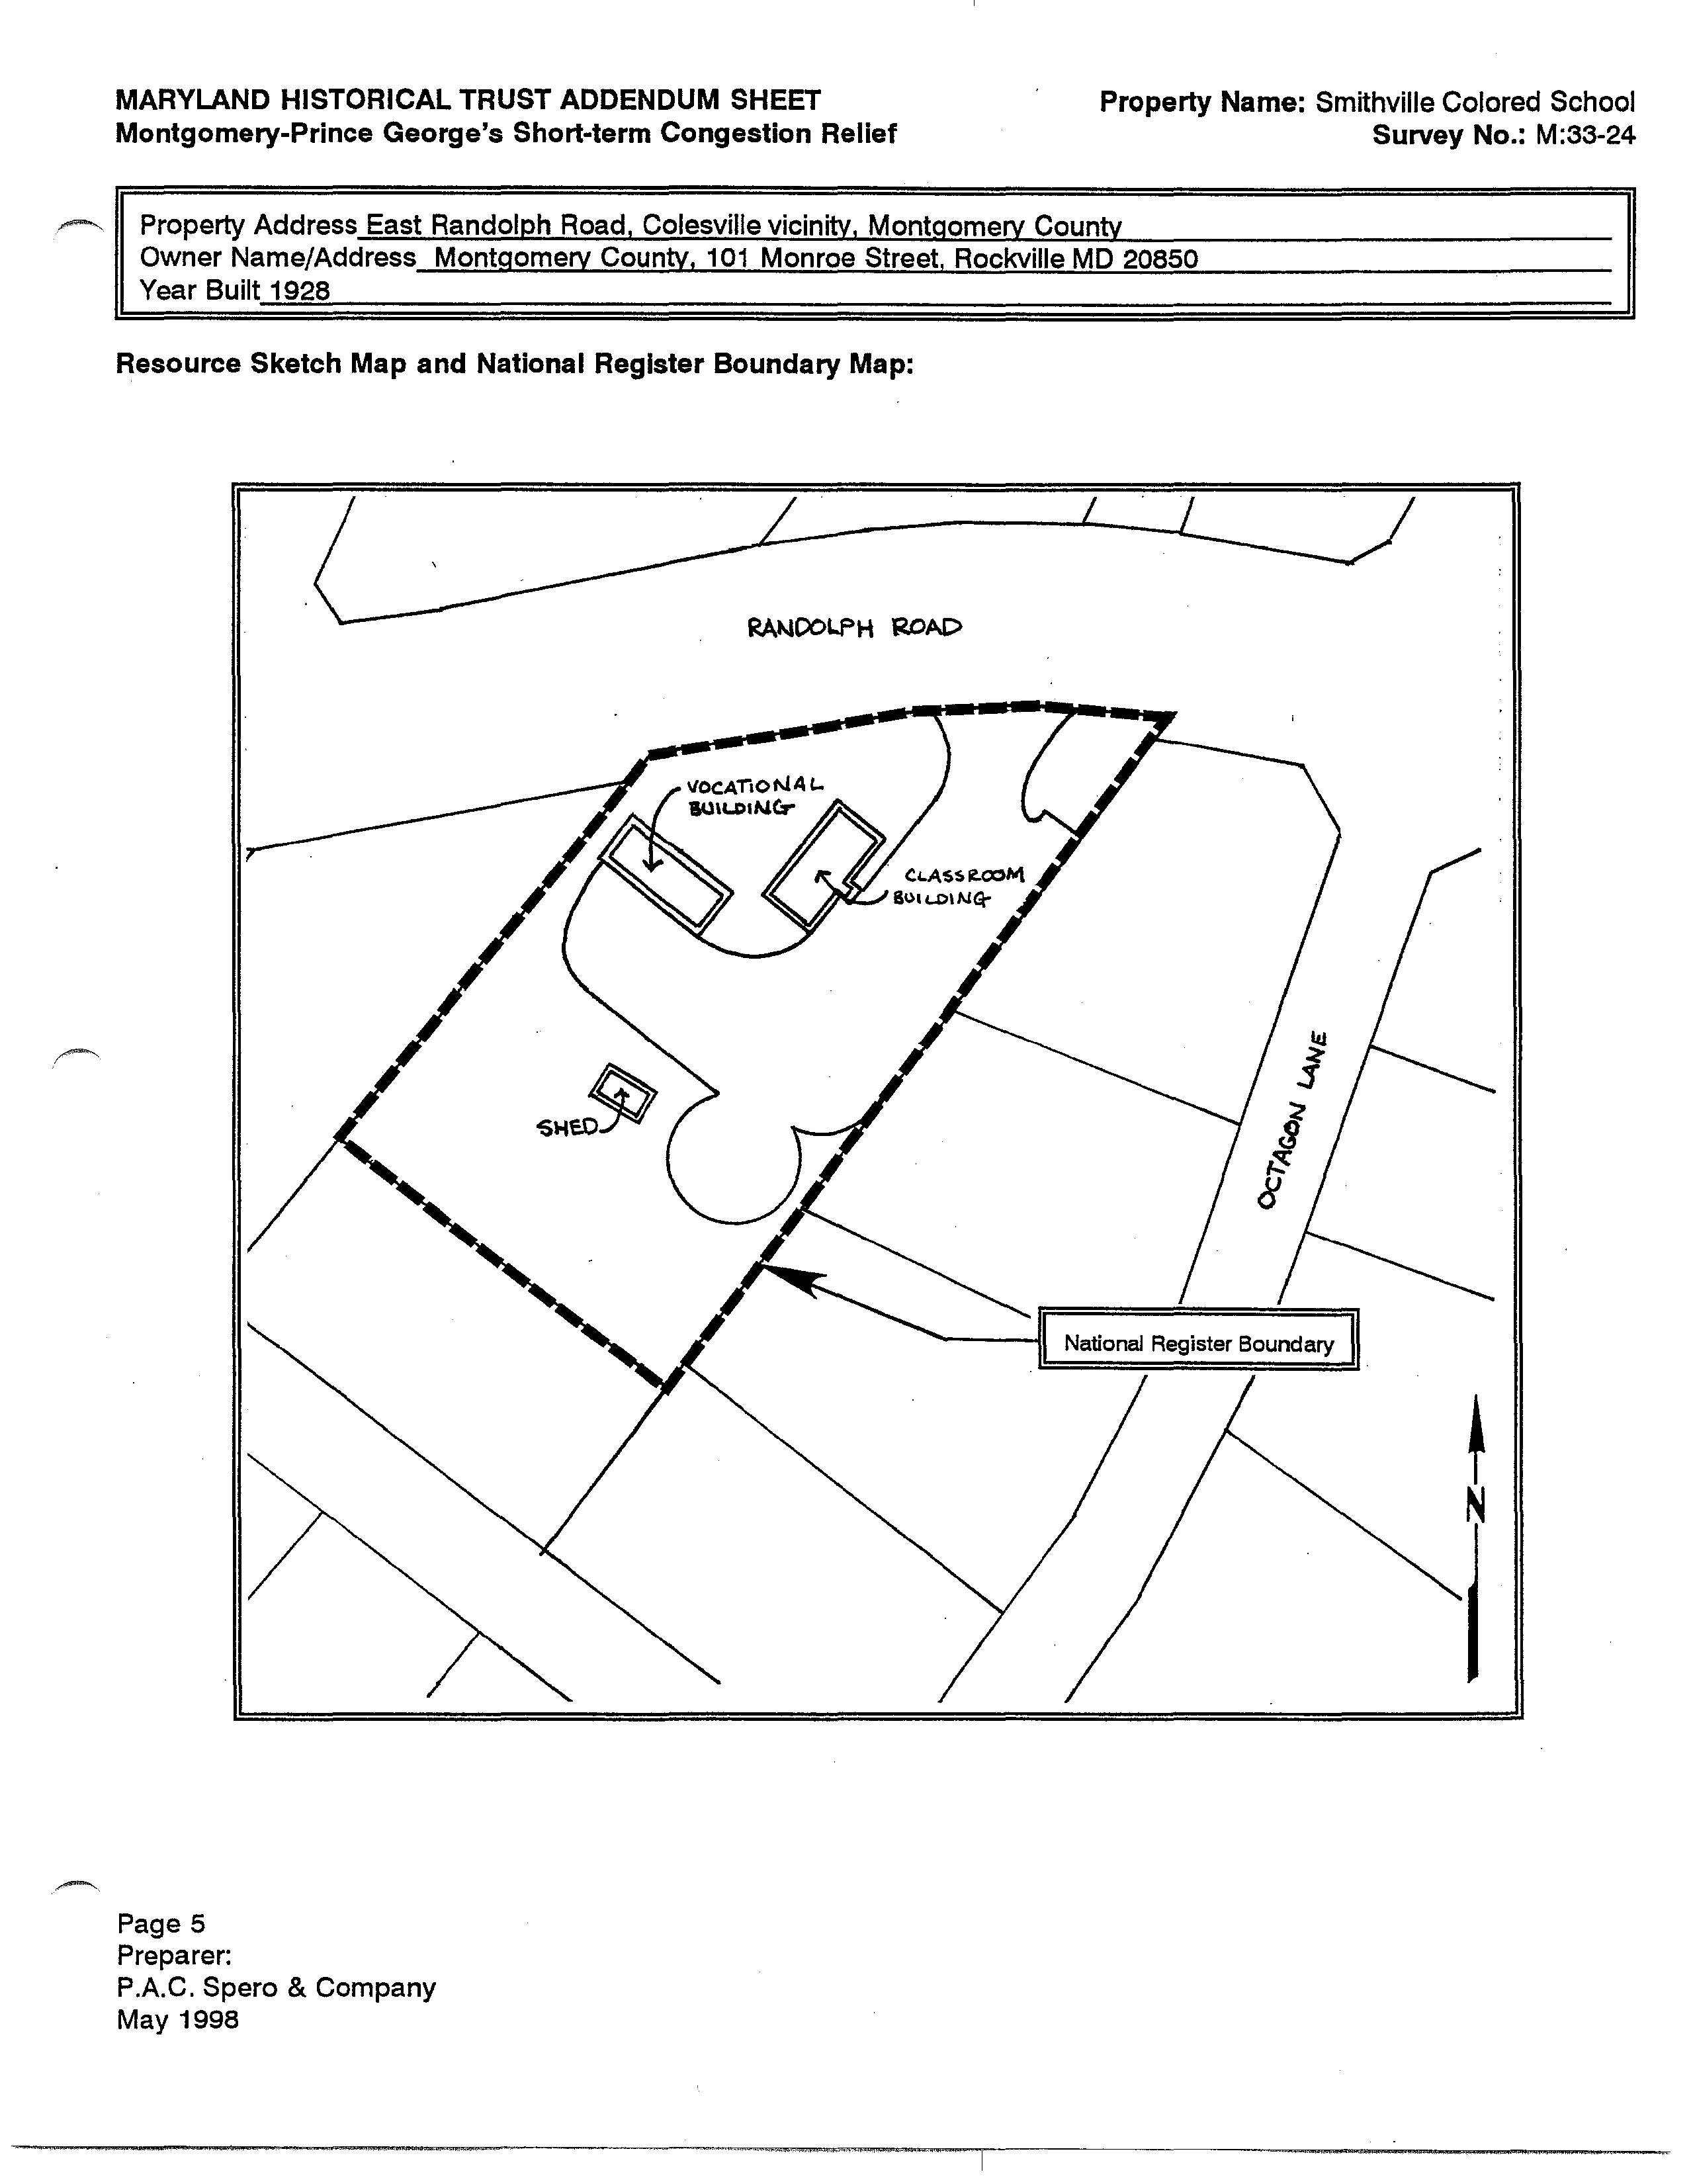 Over few map of Smithville Colored School to help show the location of the school